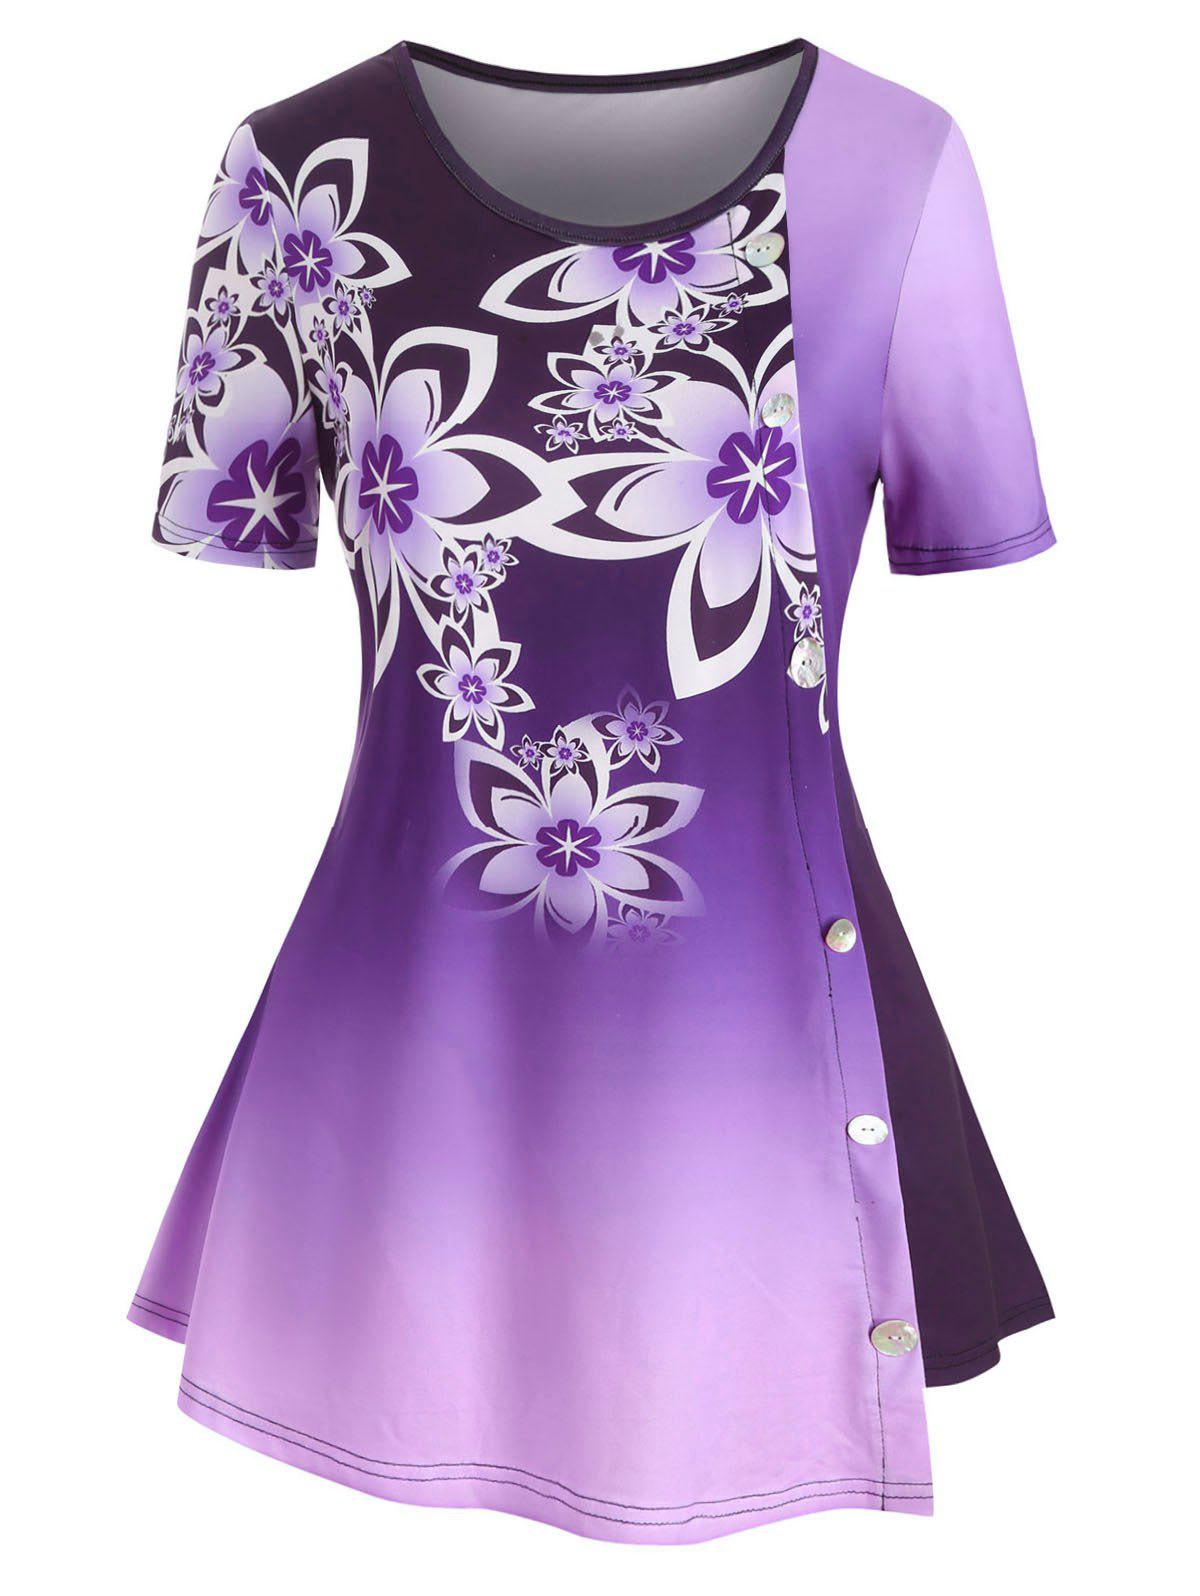 Ombre Floral Buttons Plus Size Tunic Top - CONCORD 5X